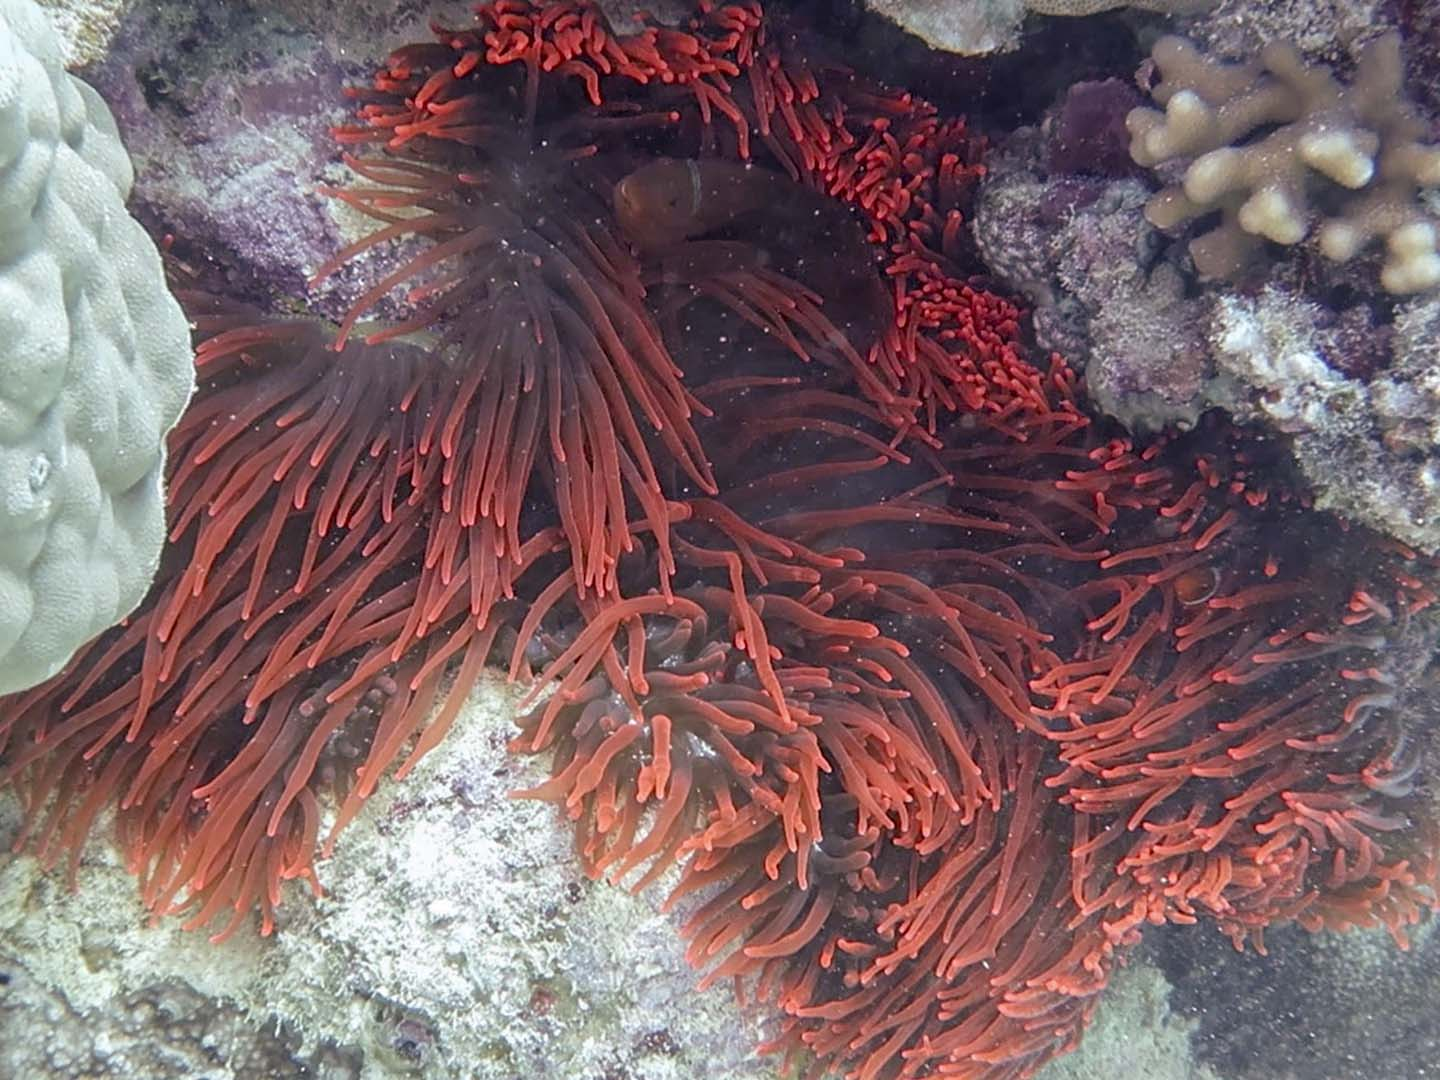 Red anemone and a red tomato anemonefish